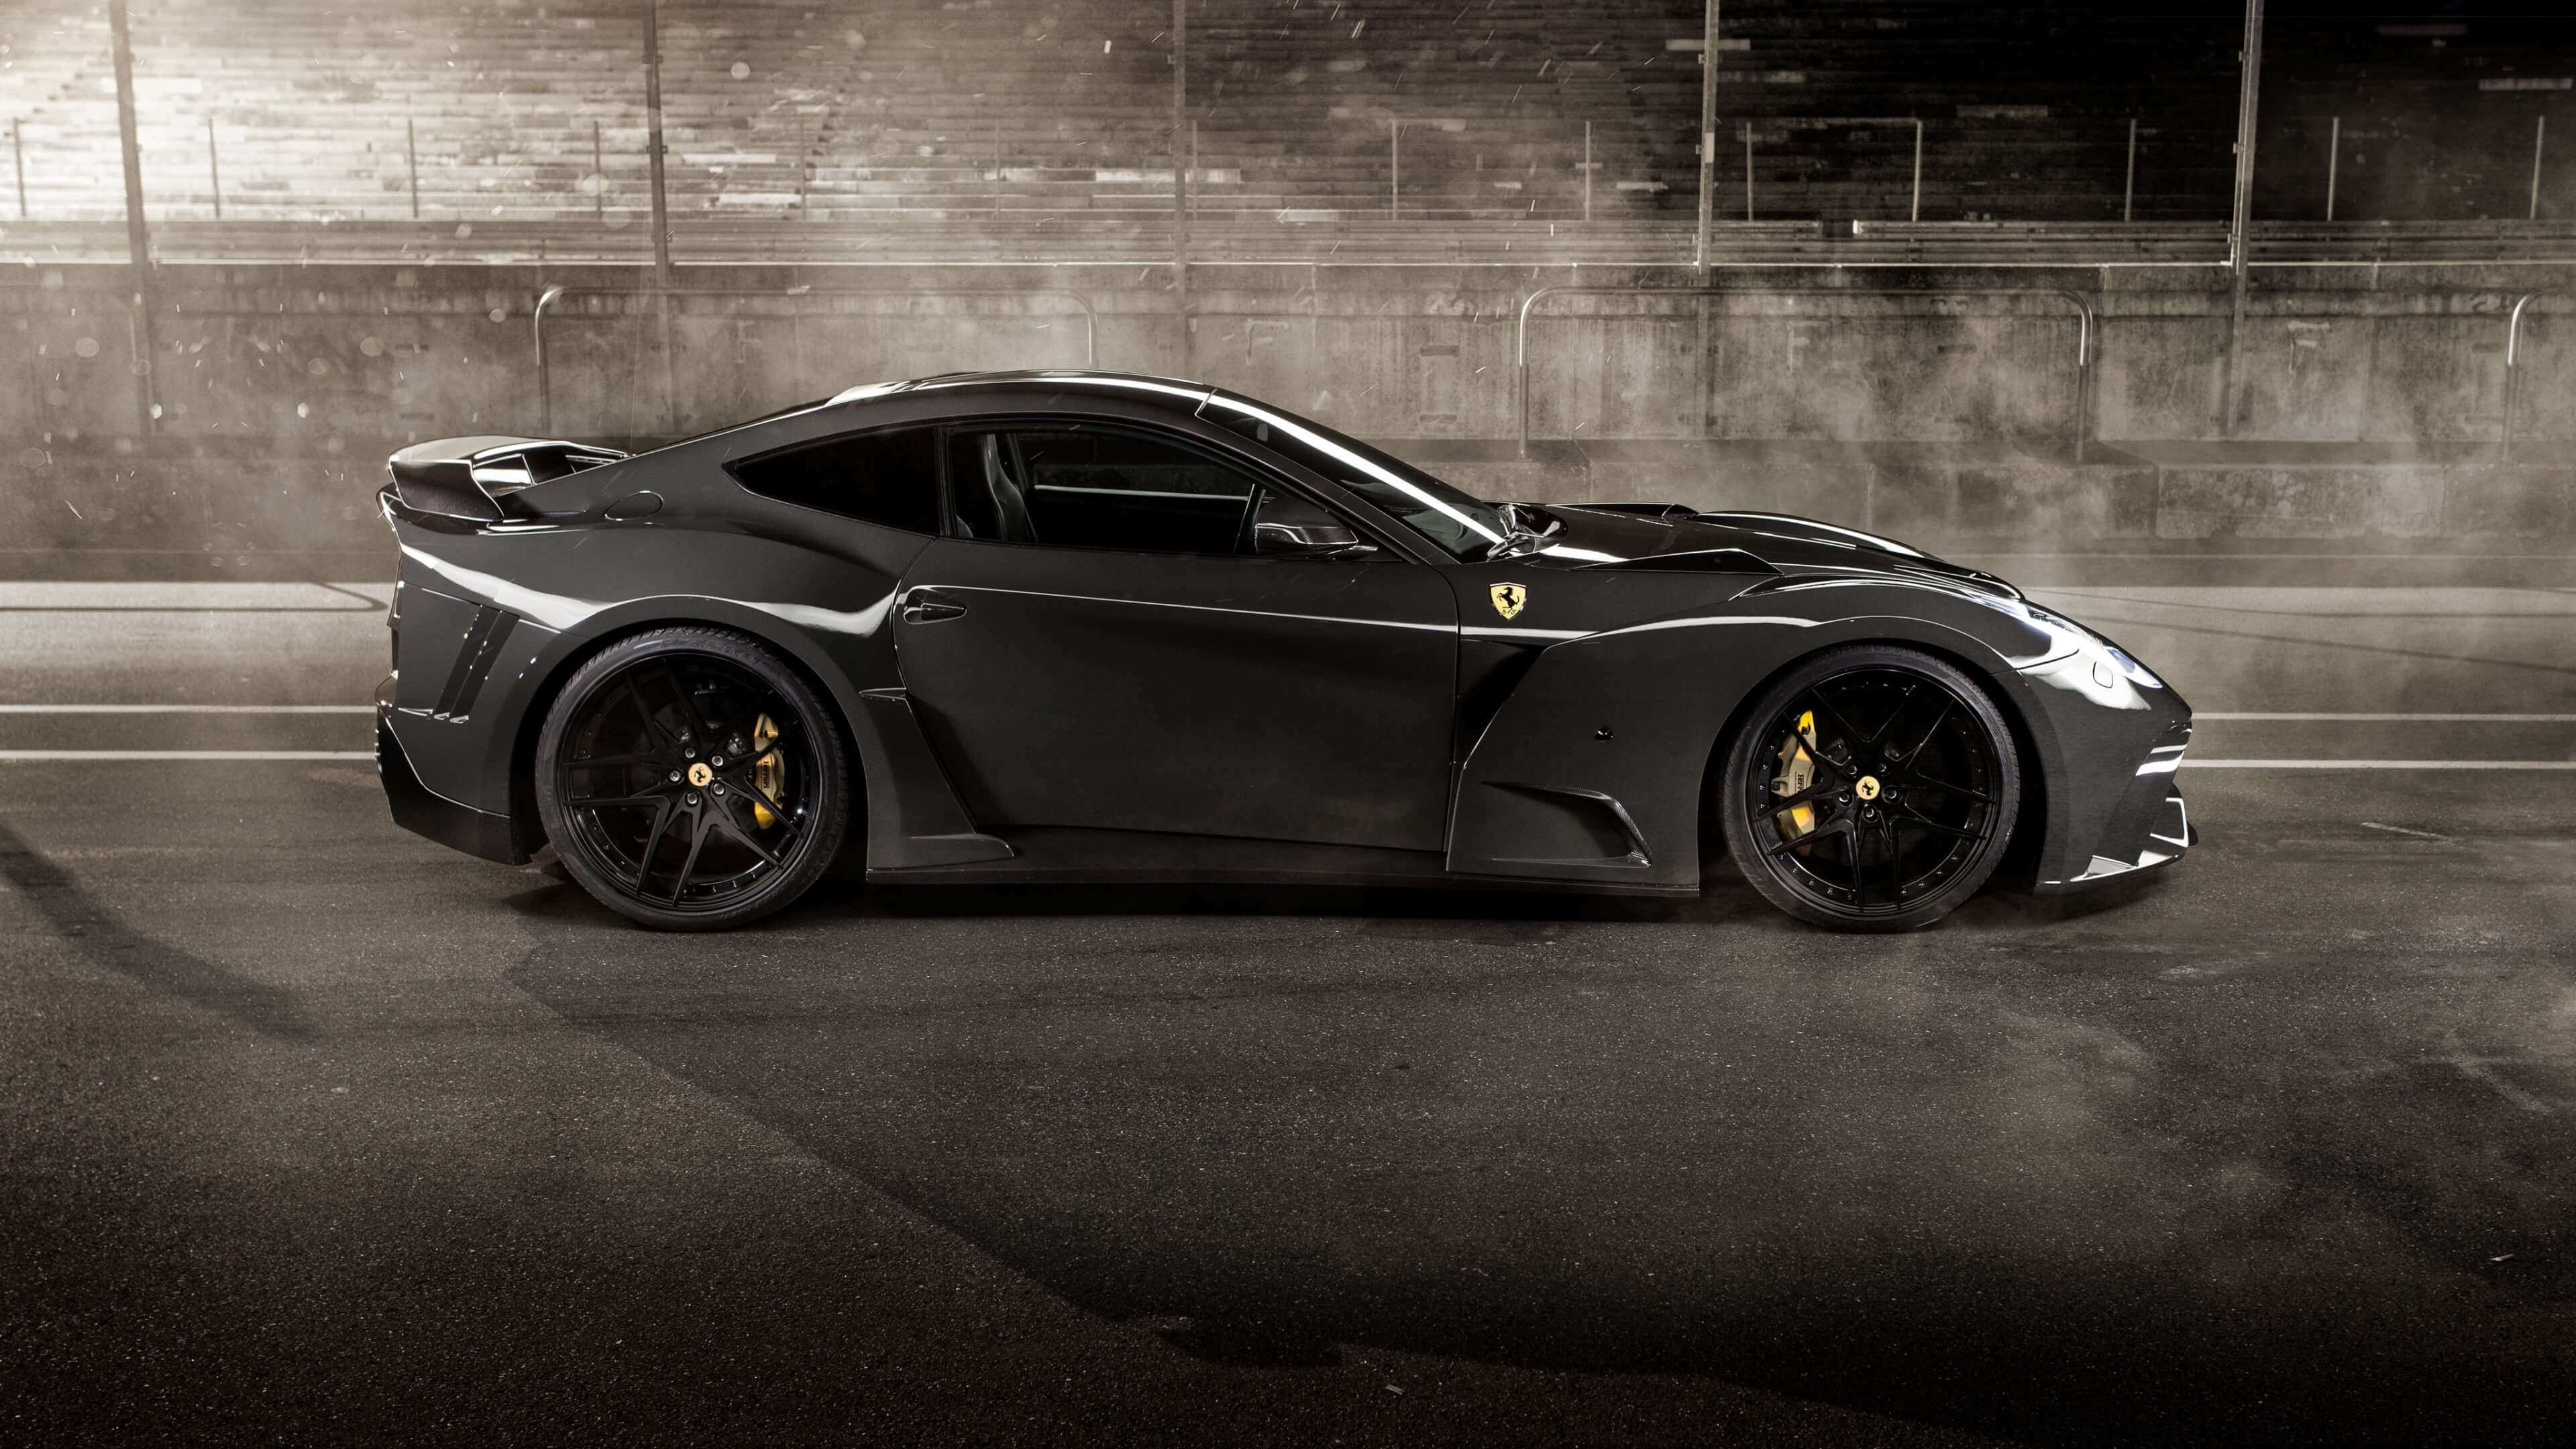 14 Concept of 2019 Ferrari F12 Berlinetta Exterior by 2019 Ferrari F12 Berlinetta